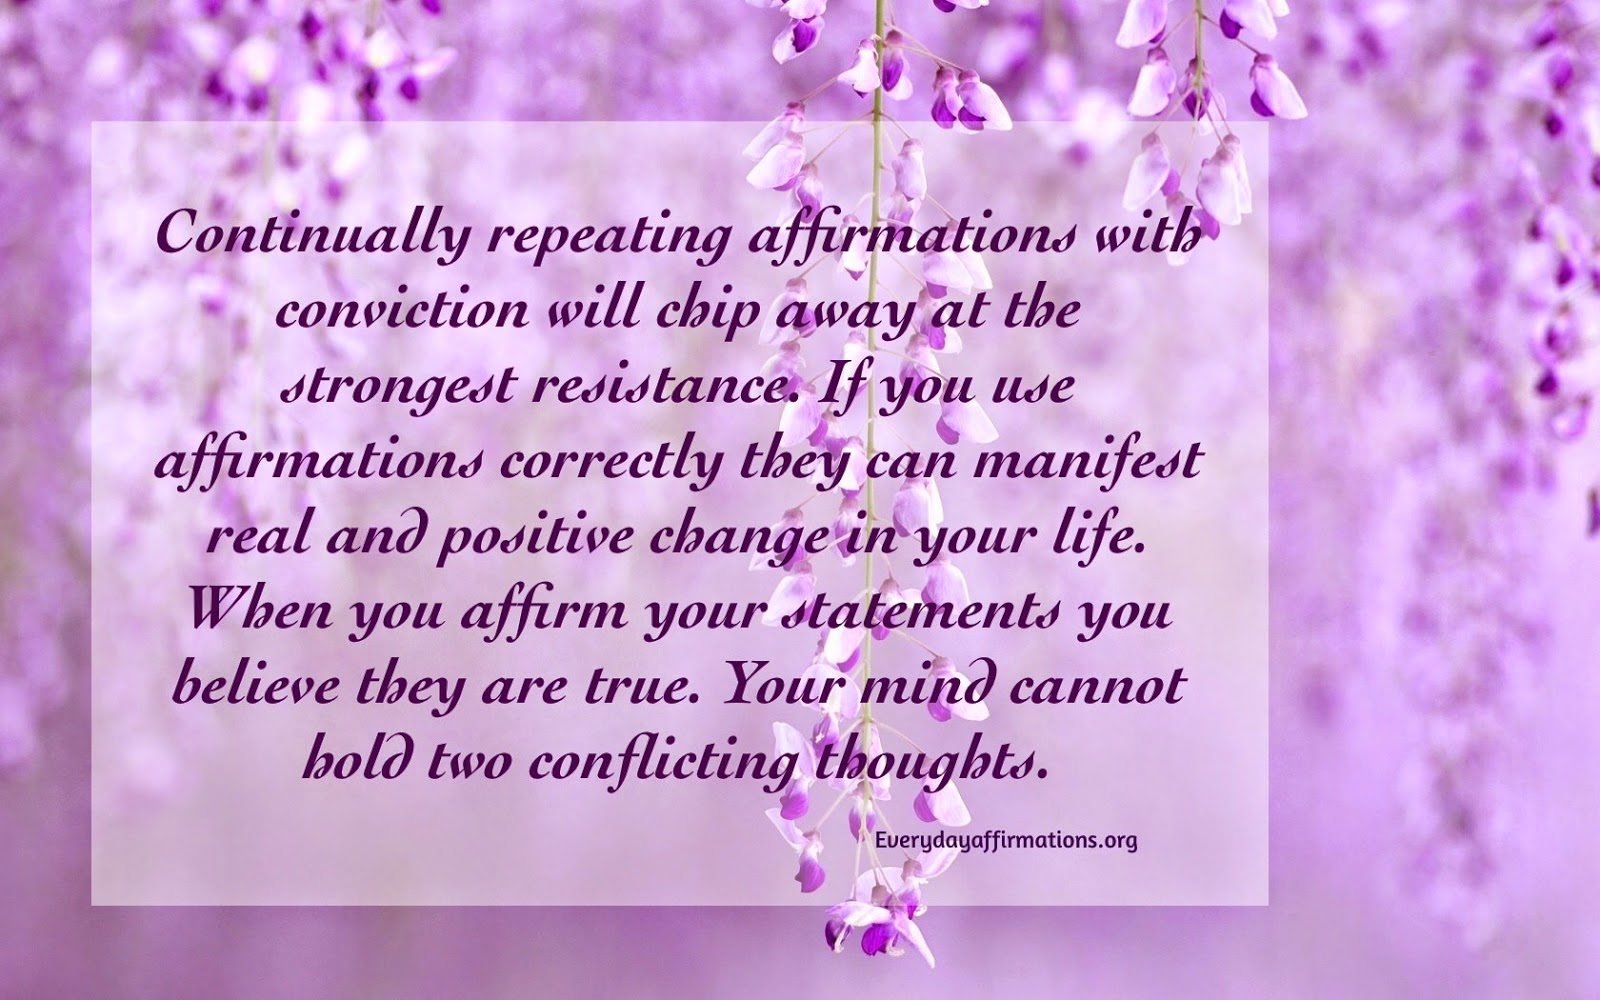 Tips to Make your Affirmations Work, Daily Affirmations, Daily Affirmations 2014